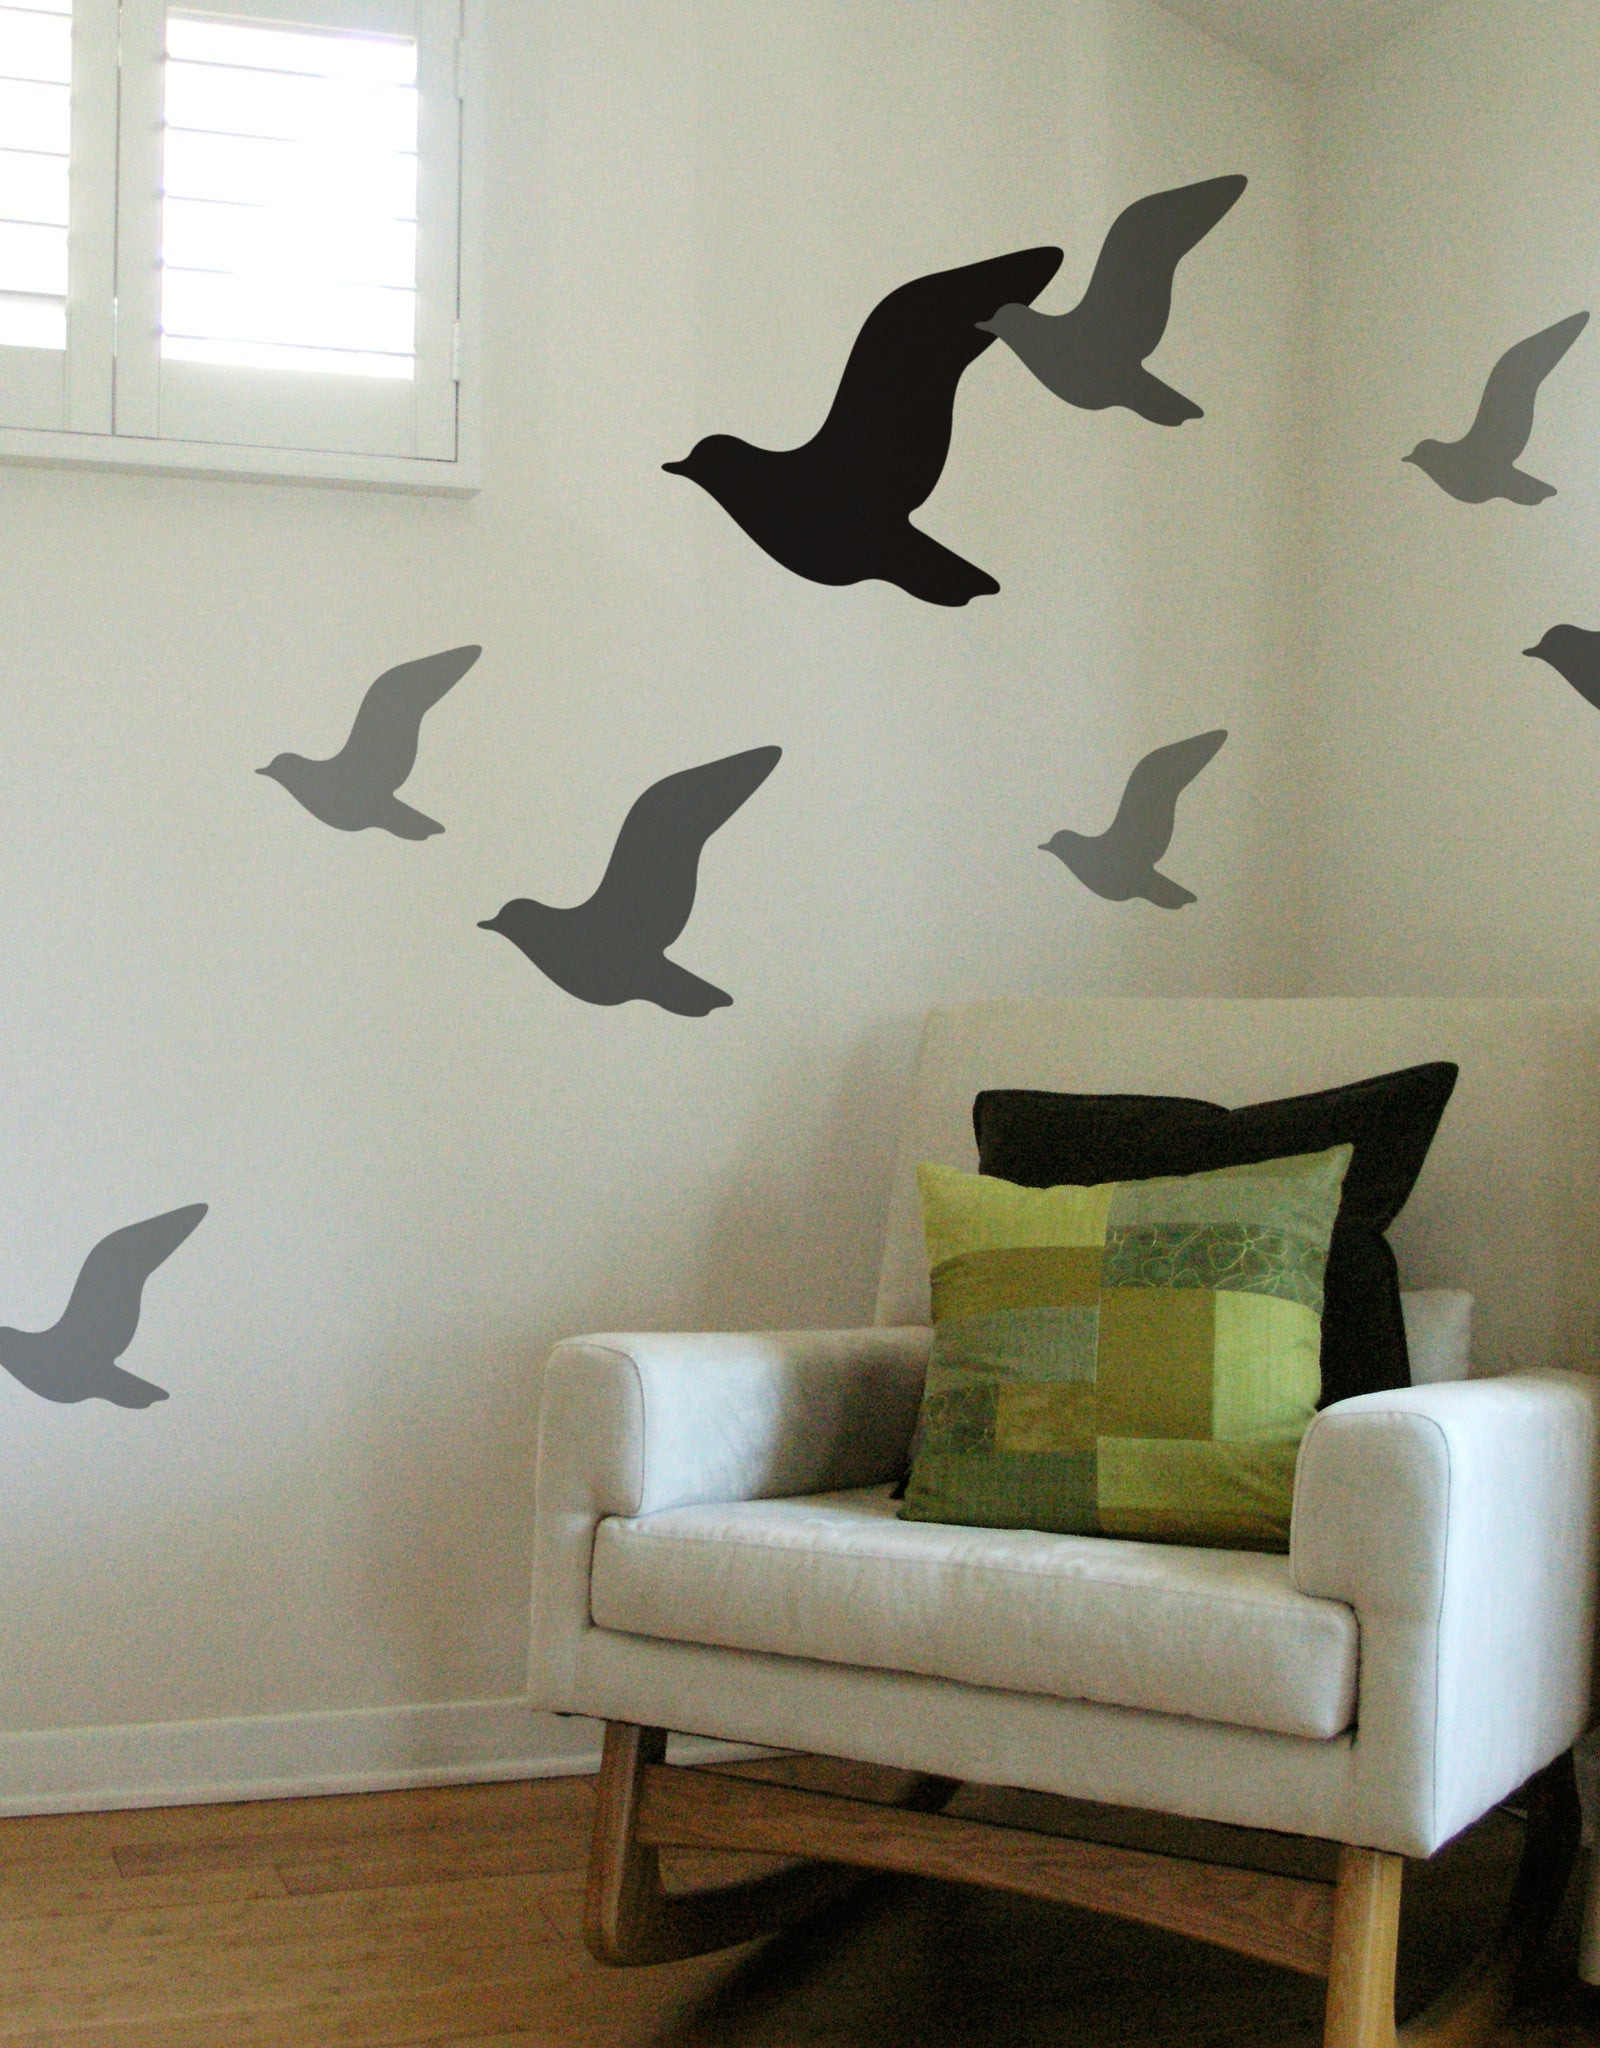 Fly · Fly : blik wall decal - www.pureclipart.com